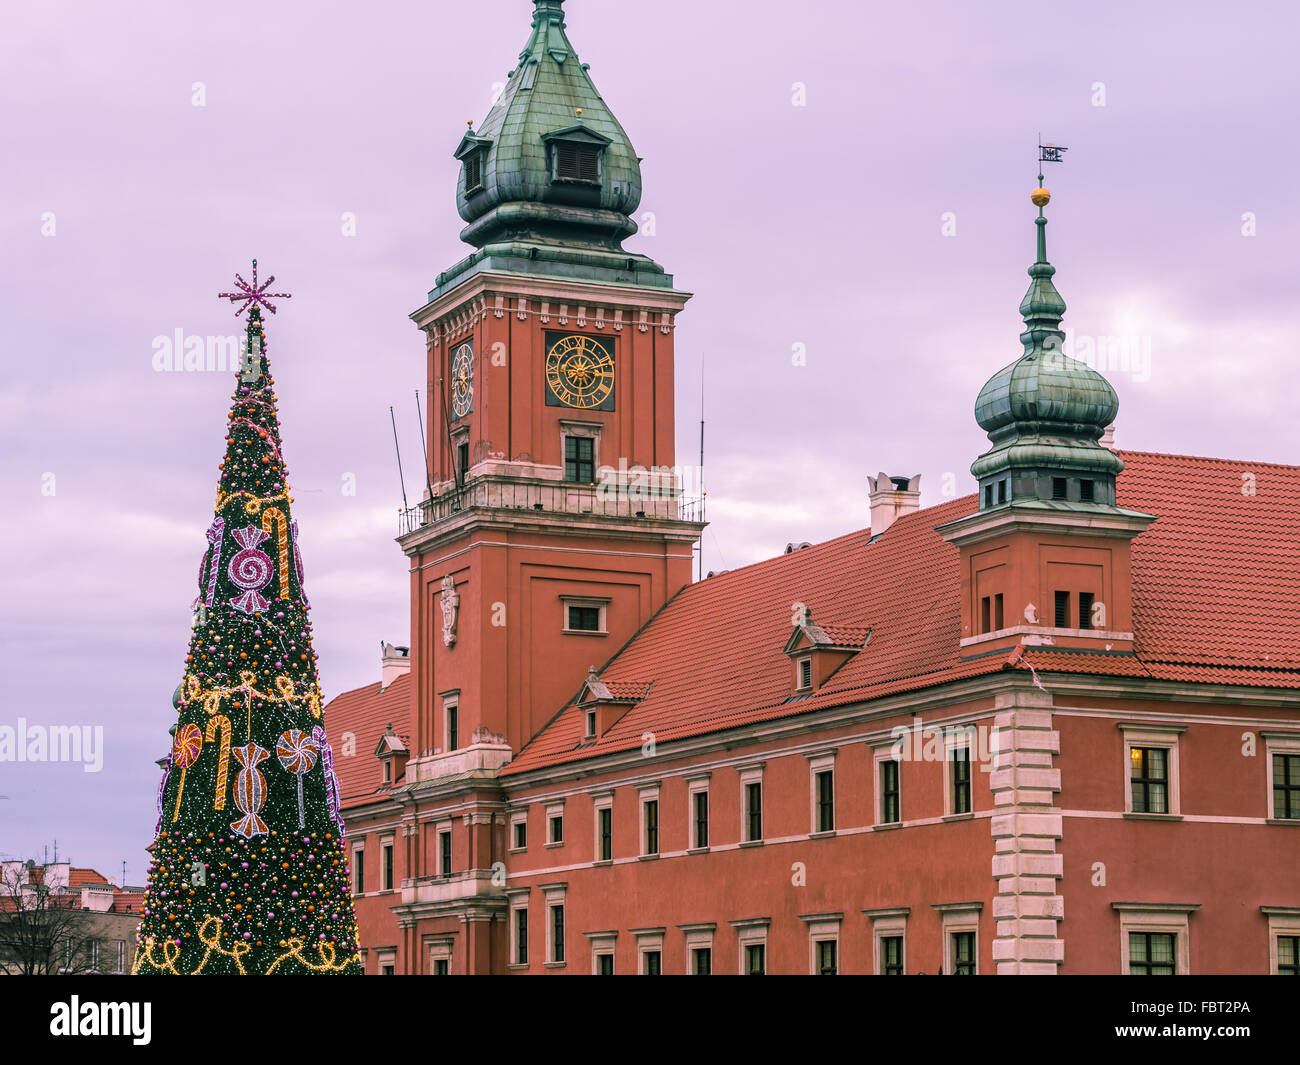 Royal Castle in the Old Town of Warsaw, Poland at Christmas time. Christmas tree in front. - Stock Image